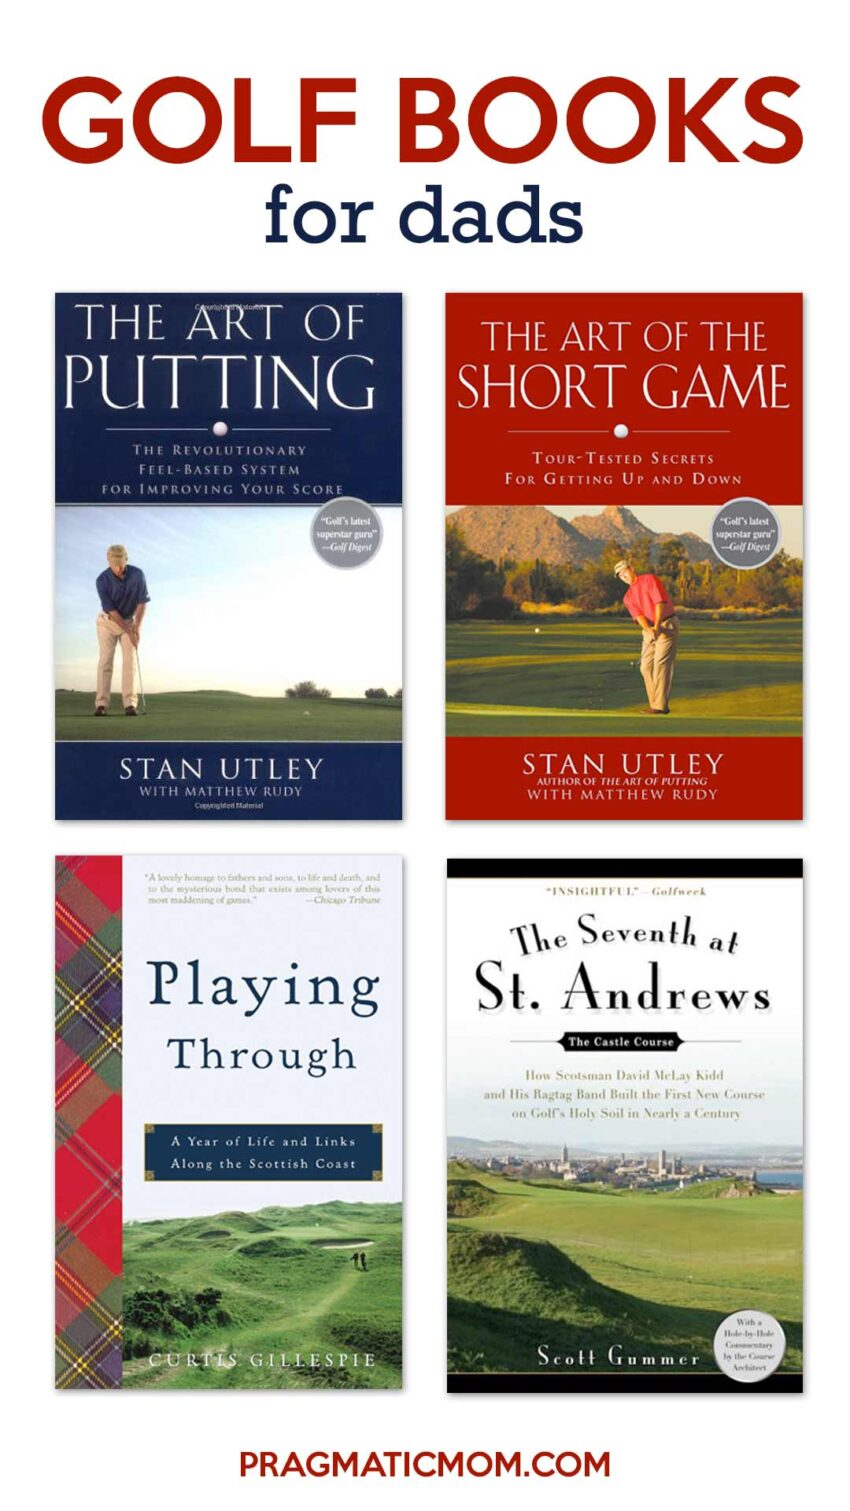 Best Golf Books for Dads